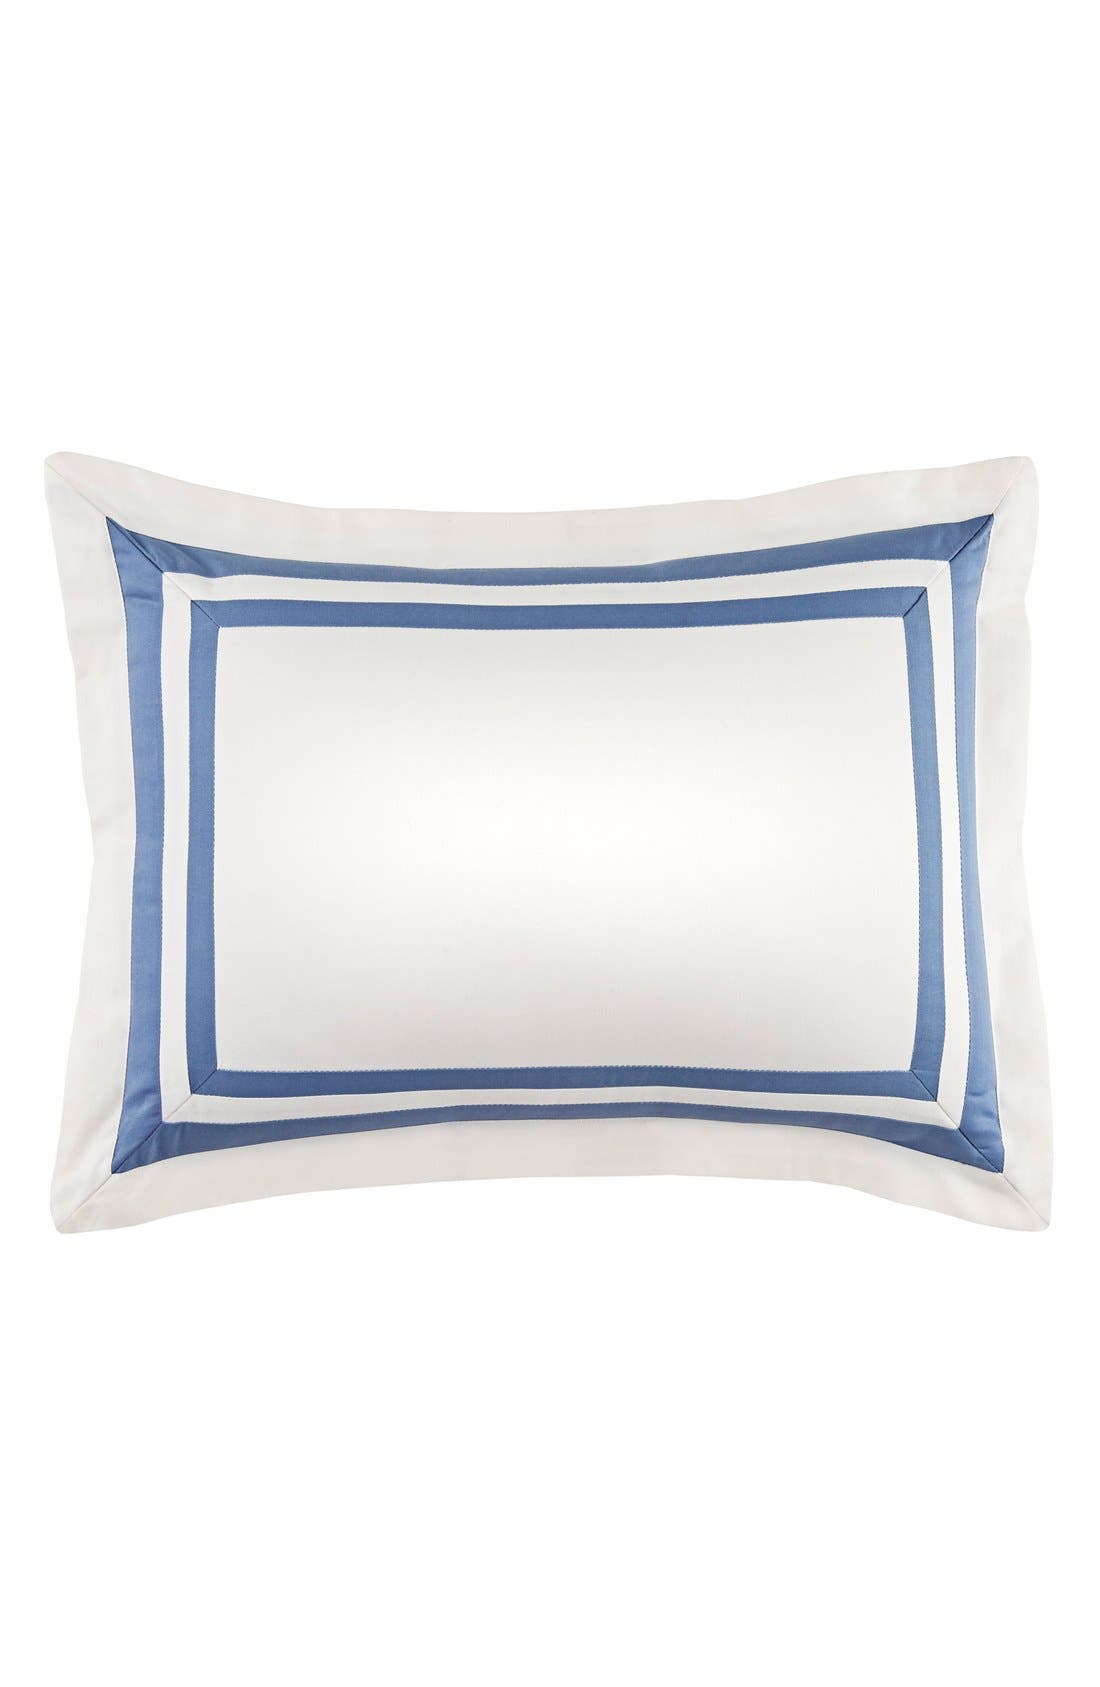 Alternate Image 1 Selected - Tommy Hilfiger Pieced Accent Pillow